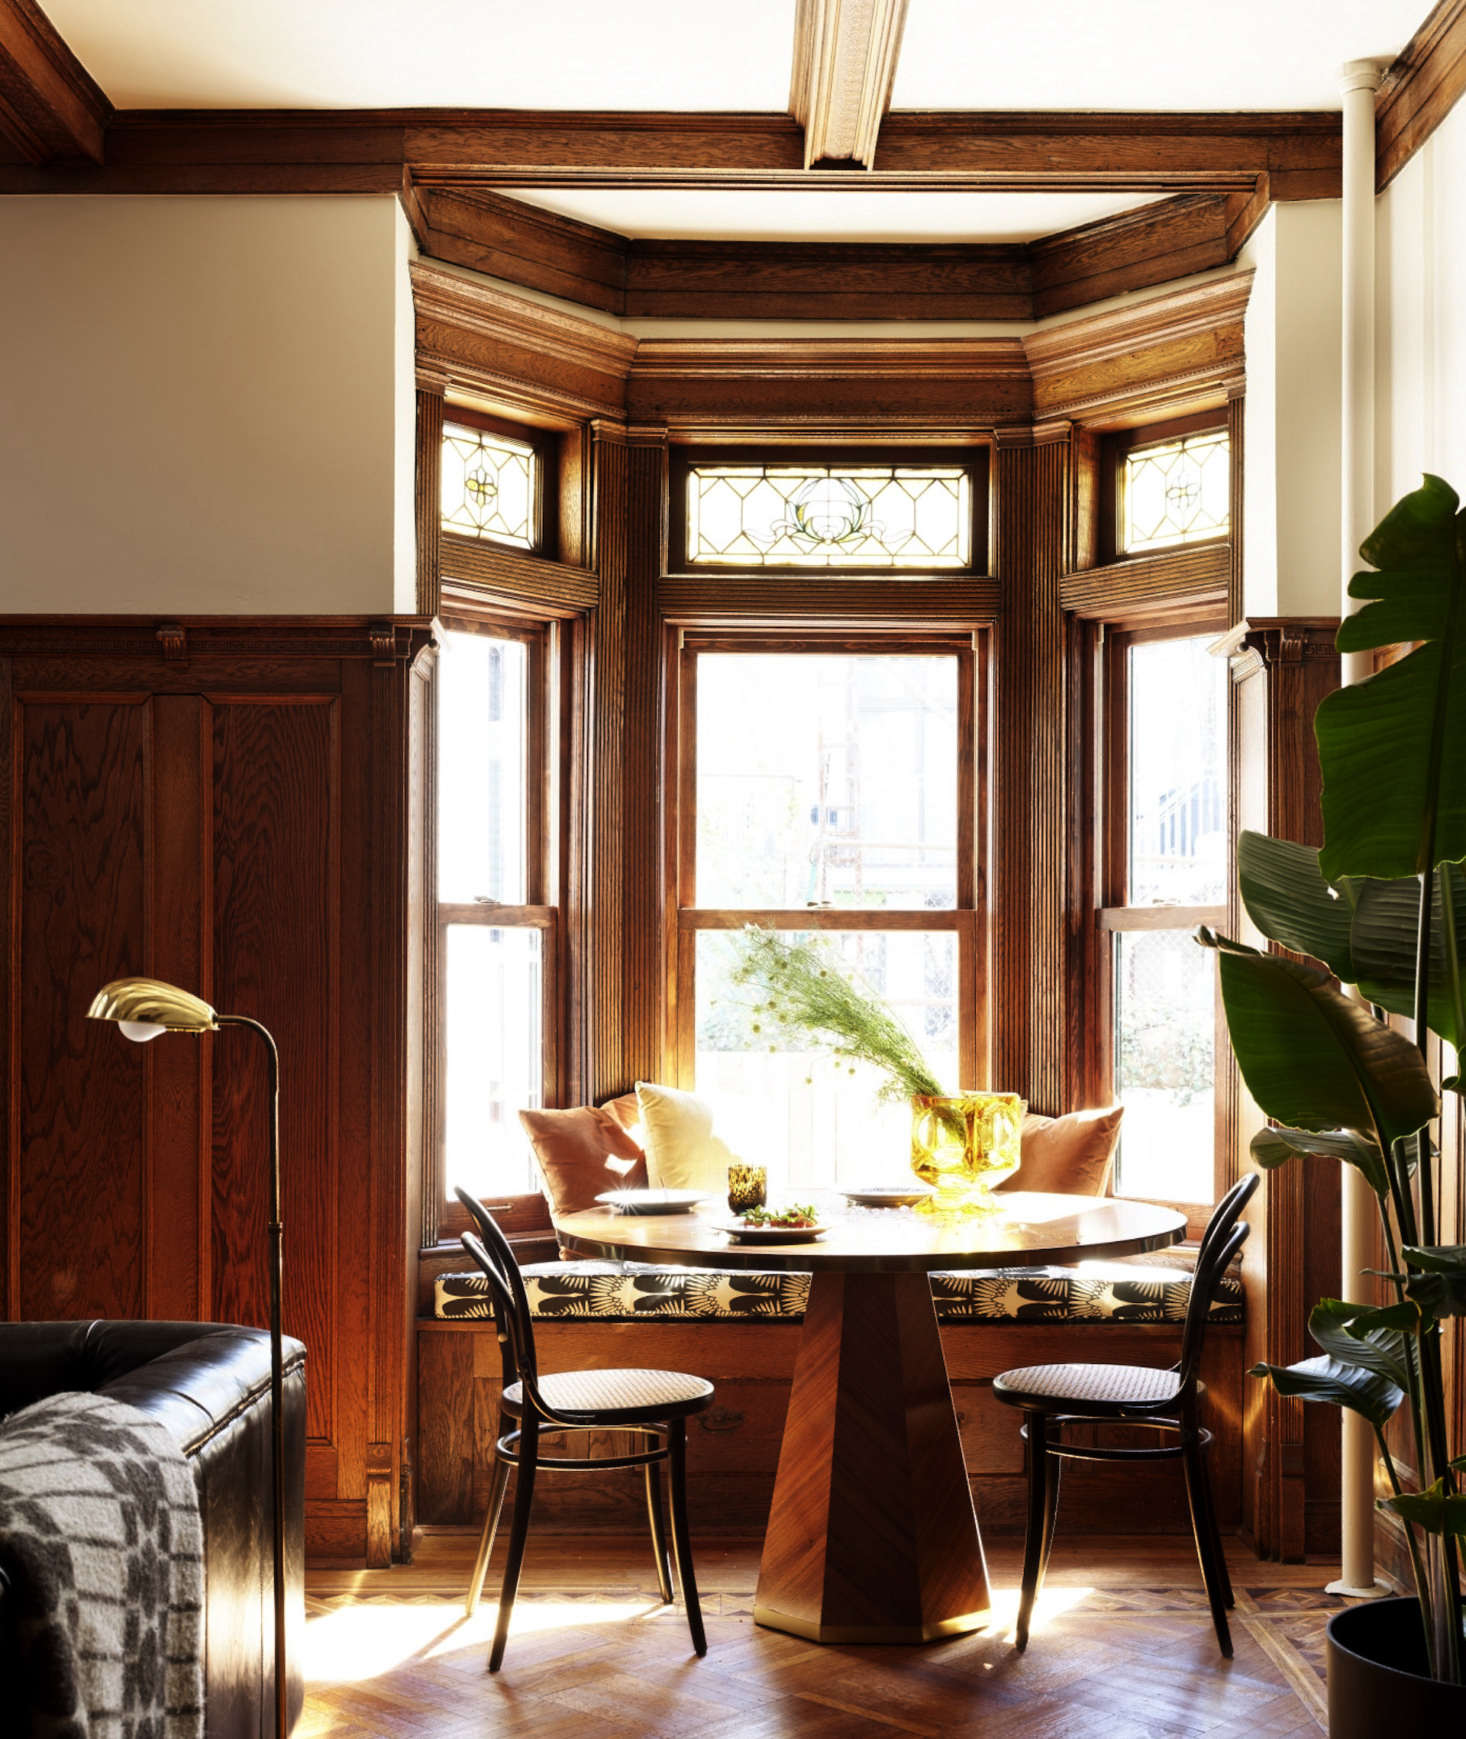 Caned chairs flank a breakfast table, set into a bow window. The stained glass at the tops of the windows is original.